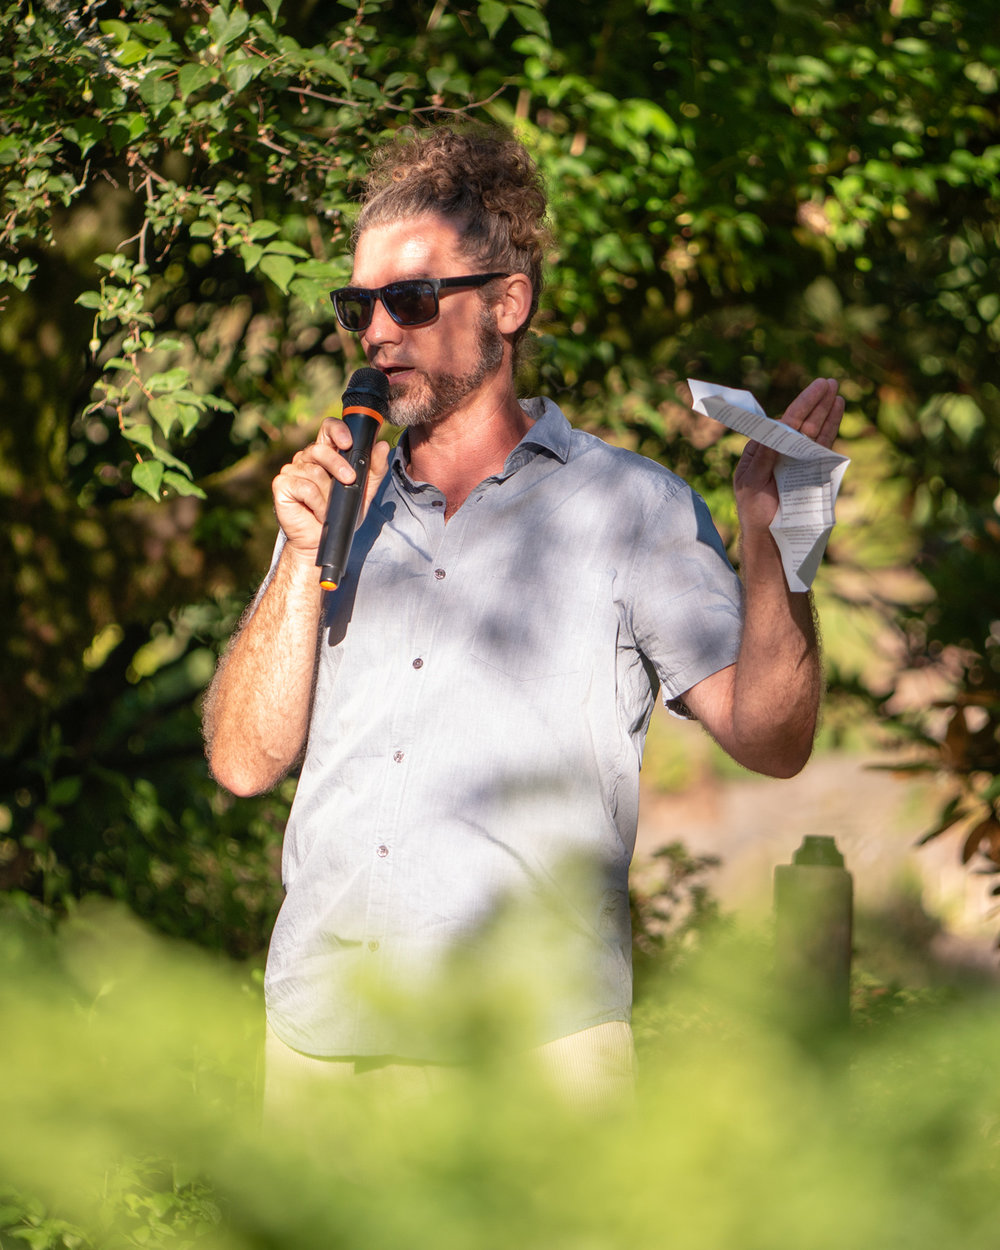 Wasim Muklashy Photography_ECO Garden Party 2018_139.jpg